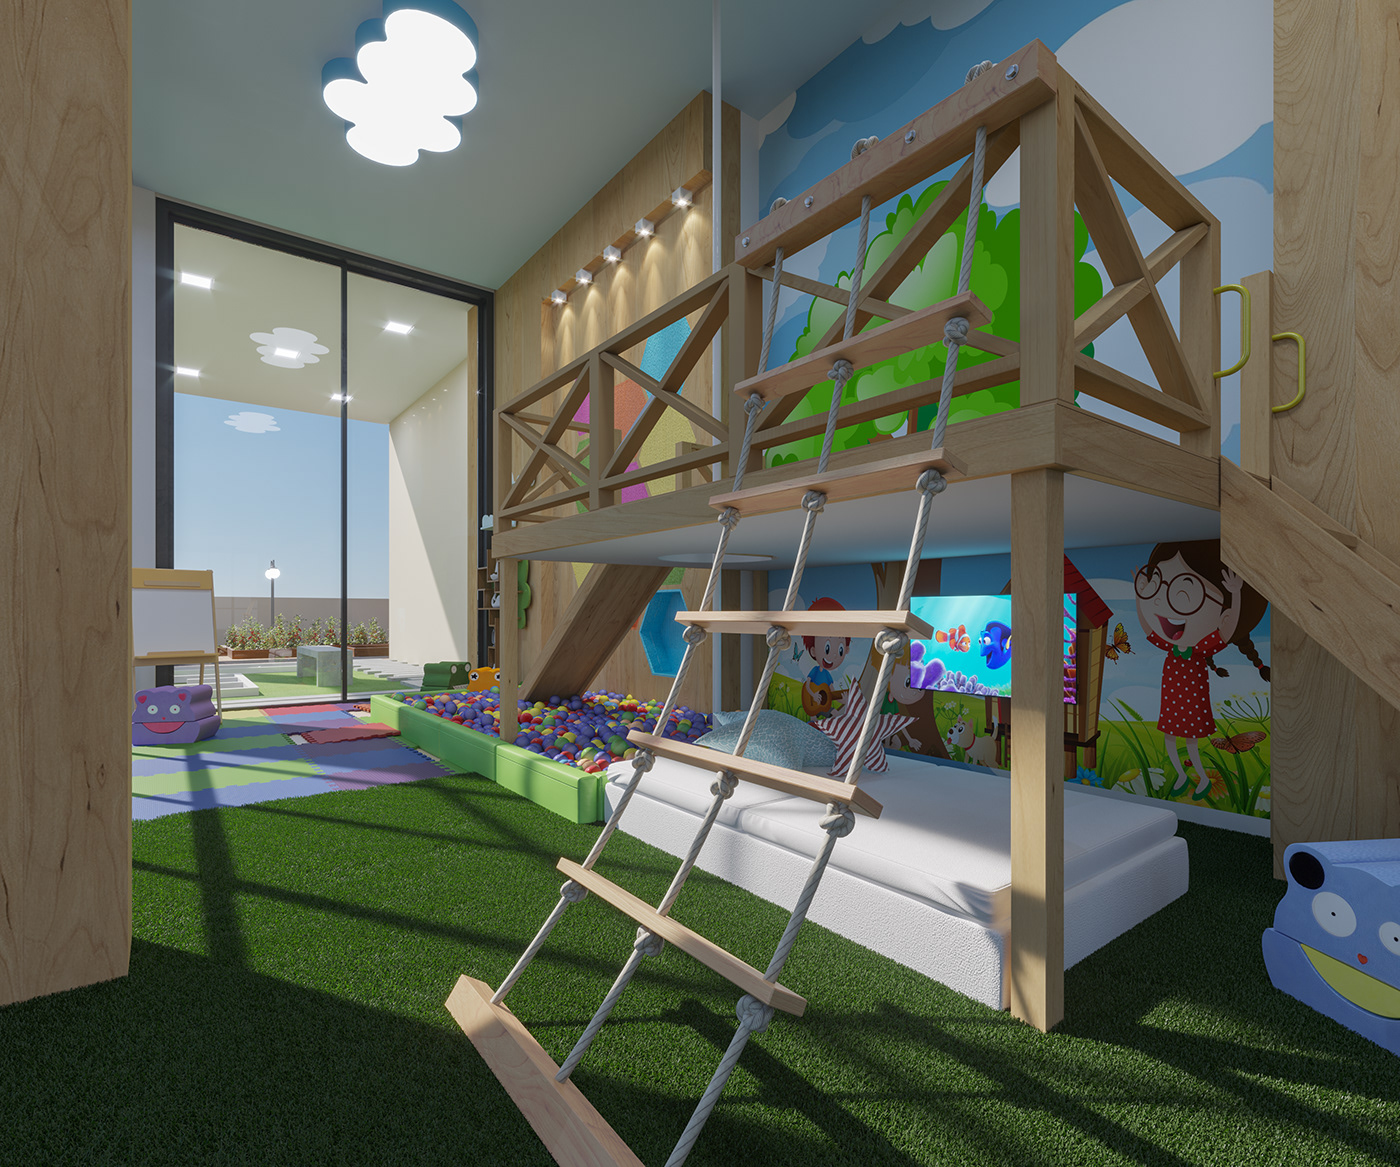 Image may contain: playground, grass and indoor